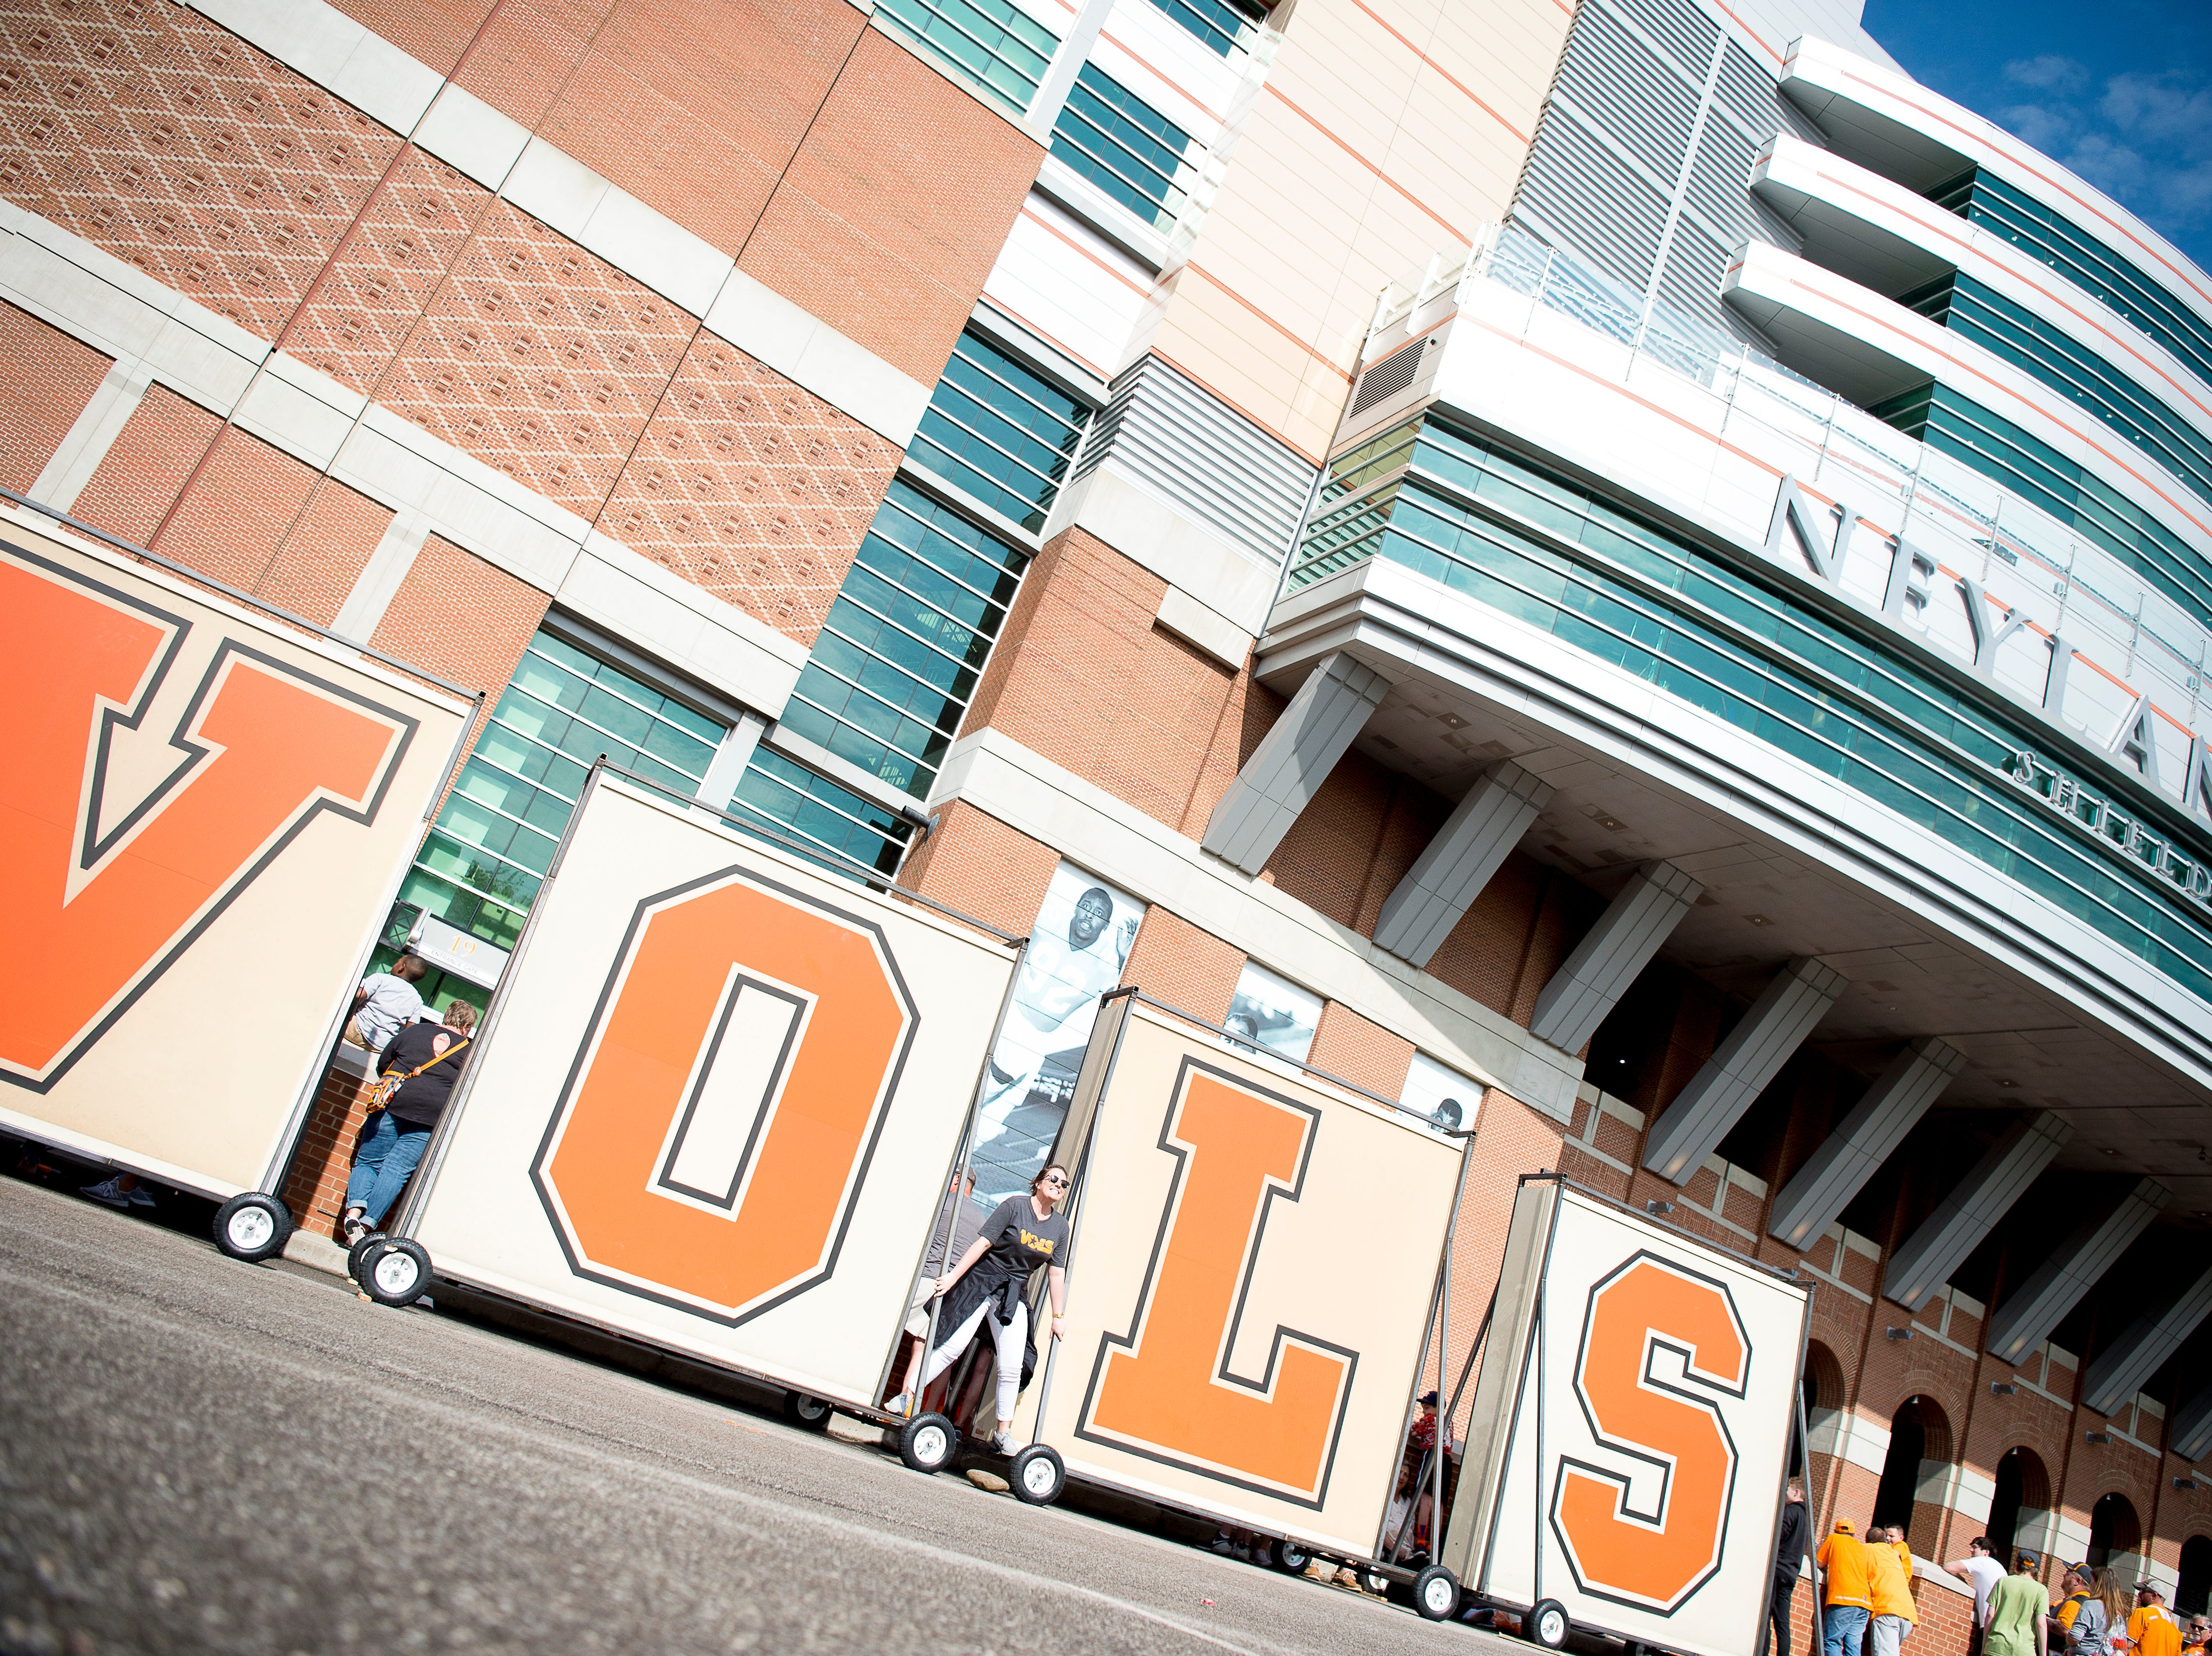 """The old """"Vols"""" sign that once stood atop Neyland Stadium are on display at the Tennessee Spring Game at Neyland Stadium in Knoxville, Tennessee on Saturday, April 13, 2019."""